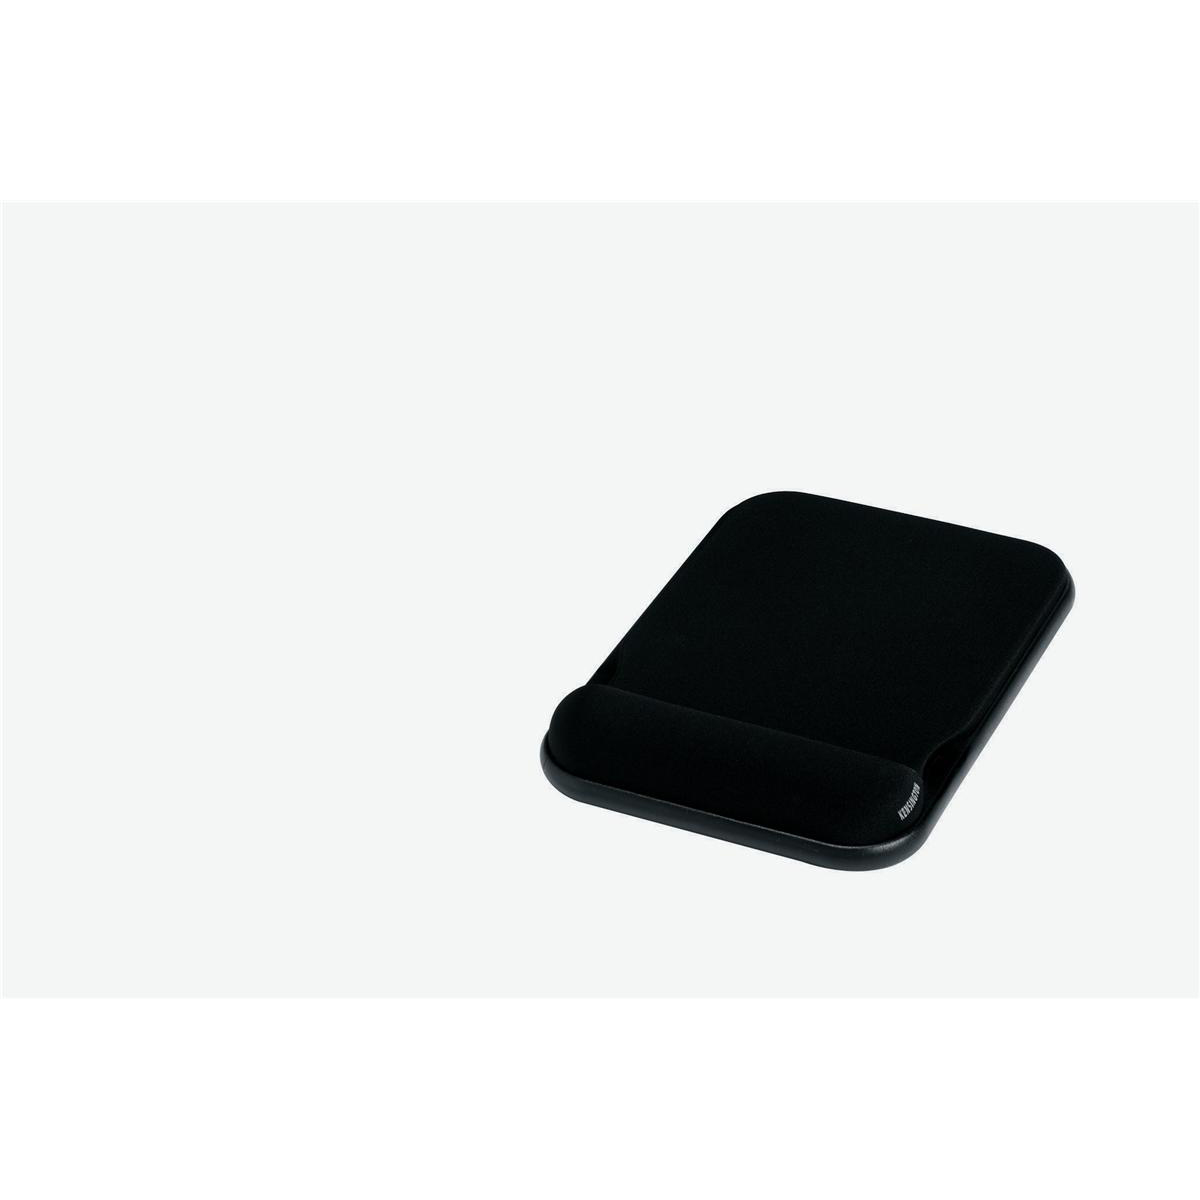 Kensington Height Adjust Gel Mouse Pad Blk 57711